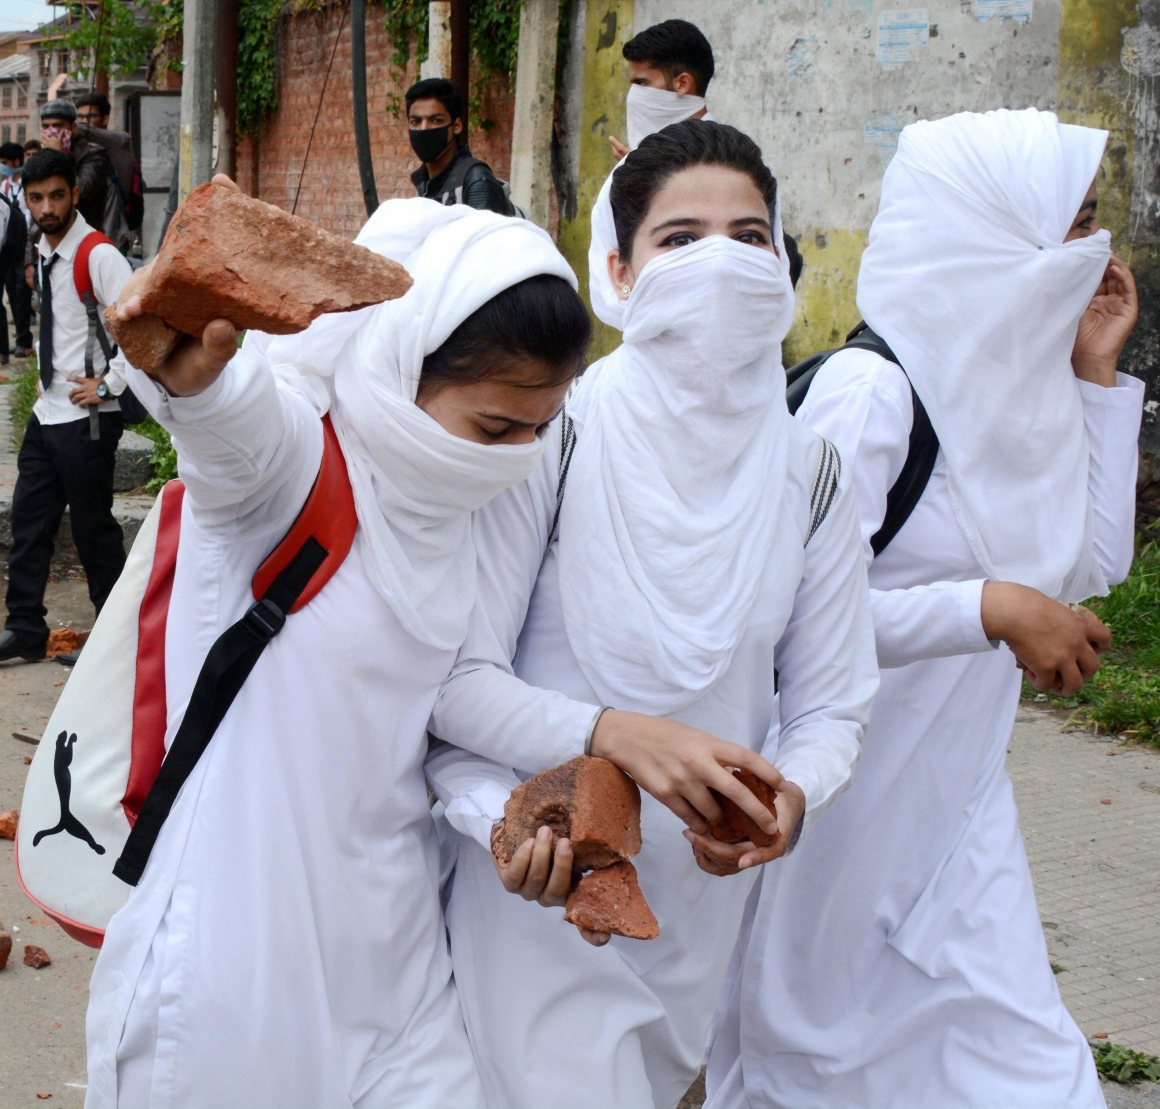 Srinagar: Girl Students holding stones to throw it on police during fresh clashes between students Police,Outside Gandhi College in Srinagar on Monday. PTI Photo(PTI5_22_2017_000174B)